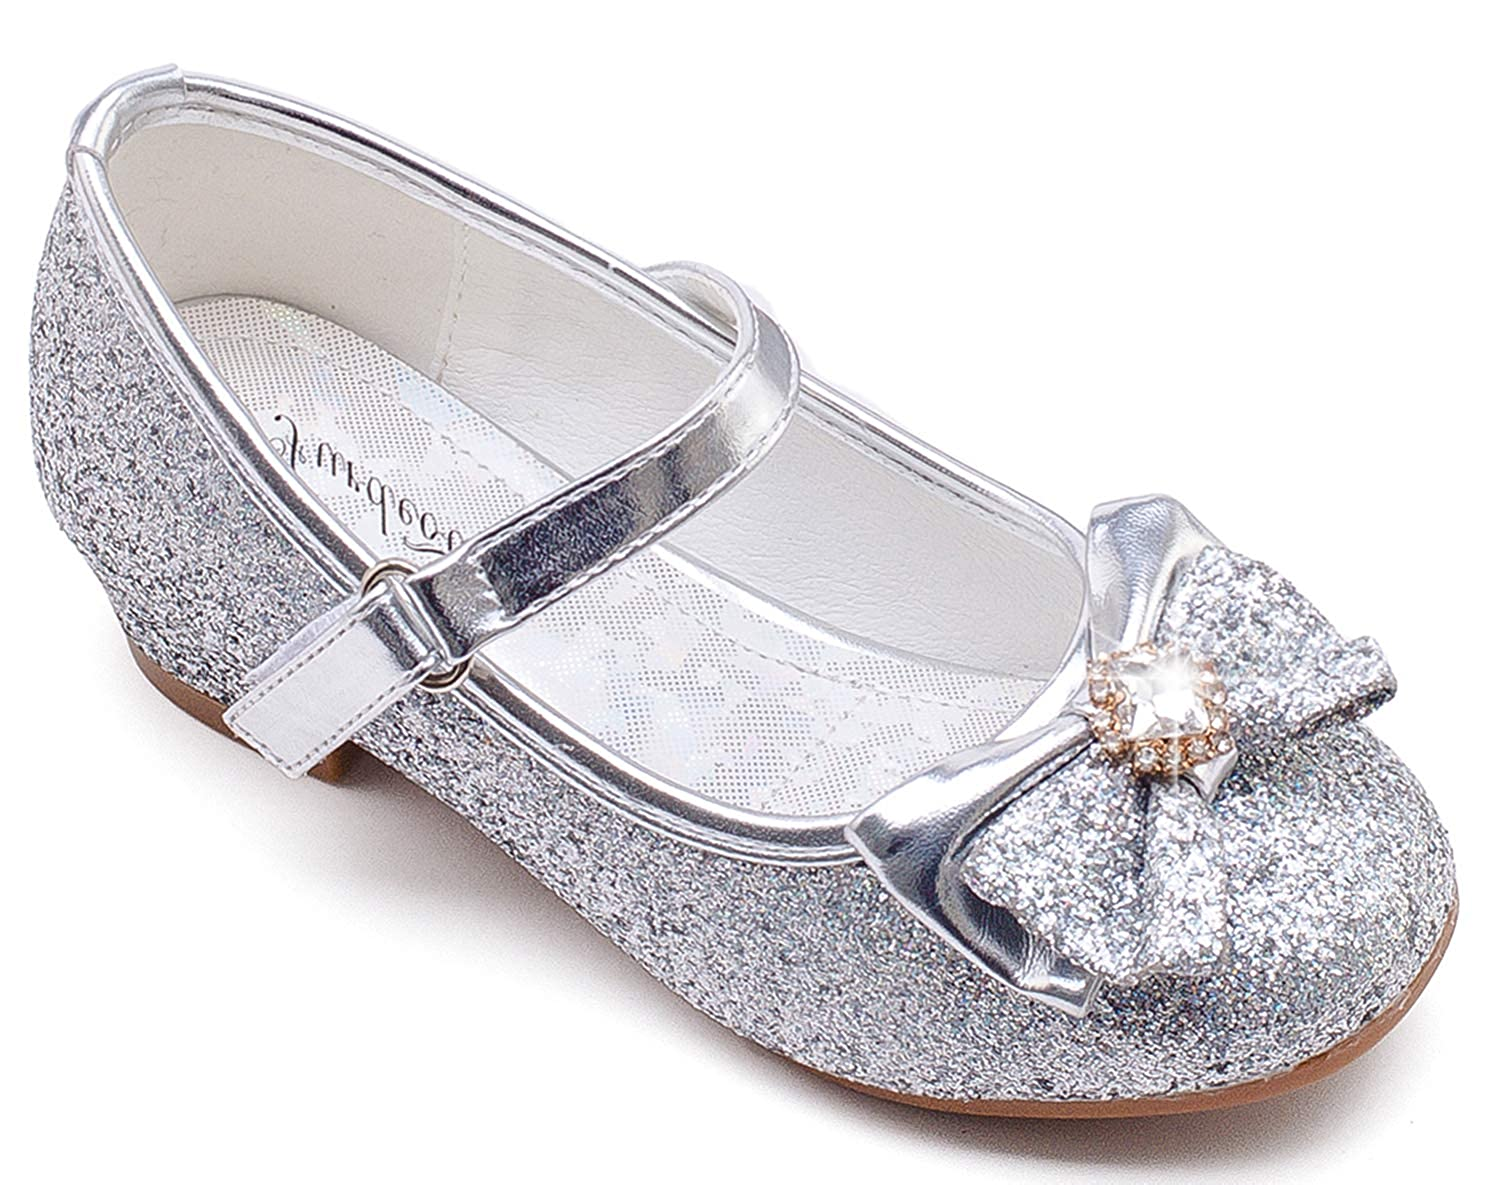 Furdeour Silver Mary Jane Glitter Shoes